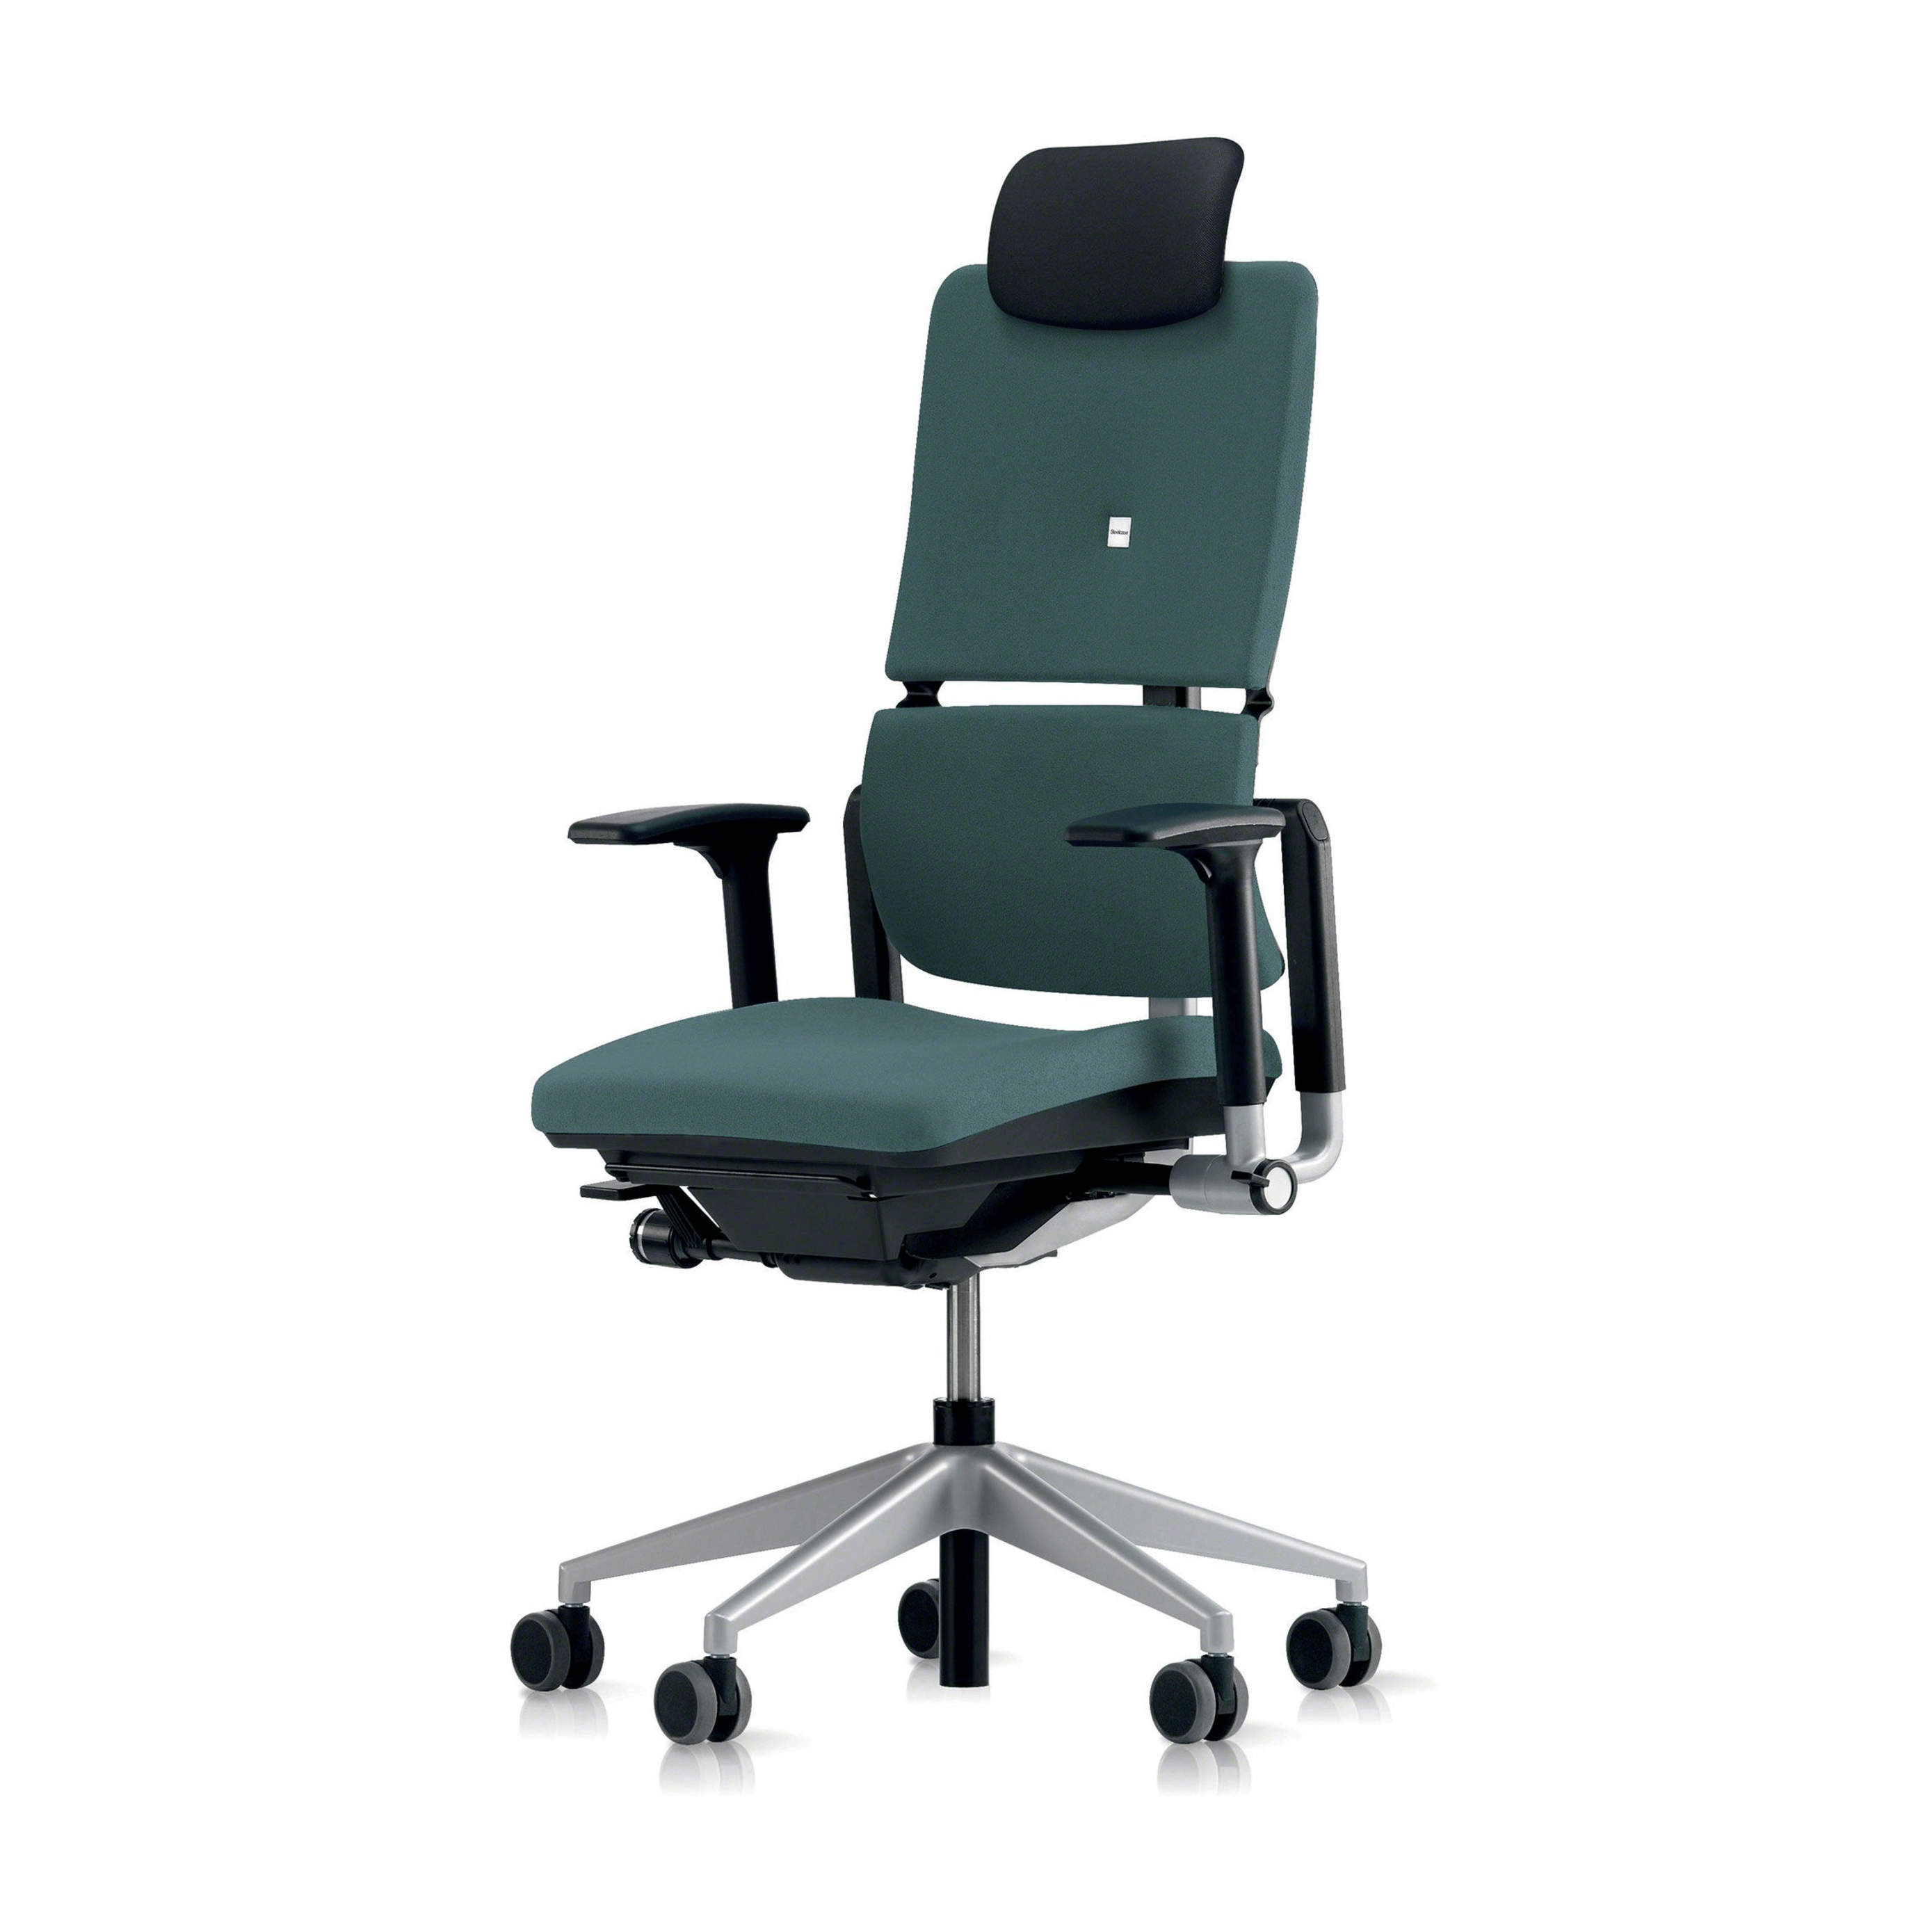 Chaises Steelcase Please De Alternativ Bureau dCeWrxBo